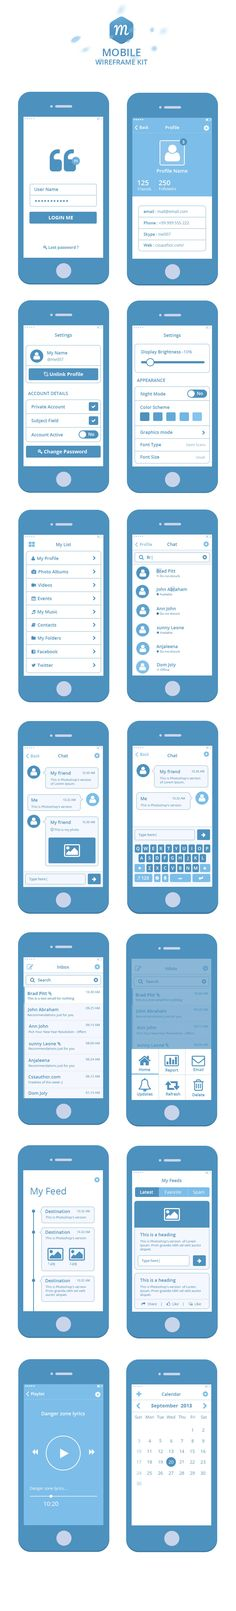 Mobile Wireframe Kit PSD › Wireframes on